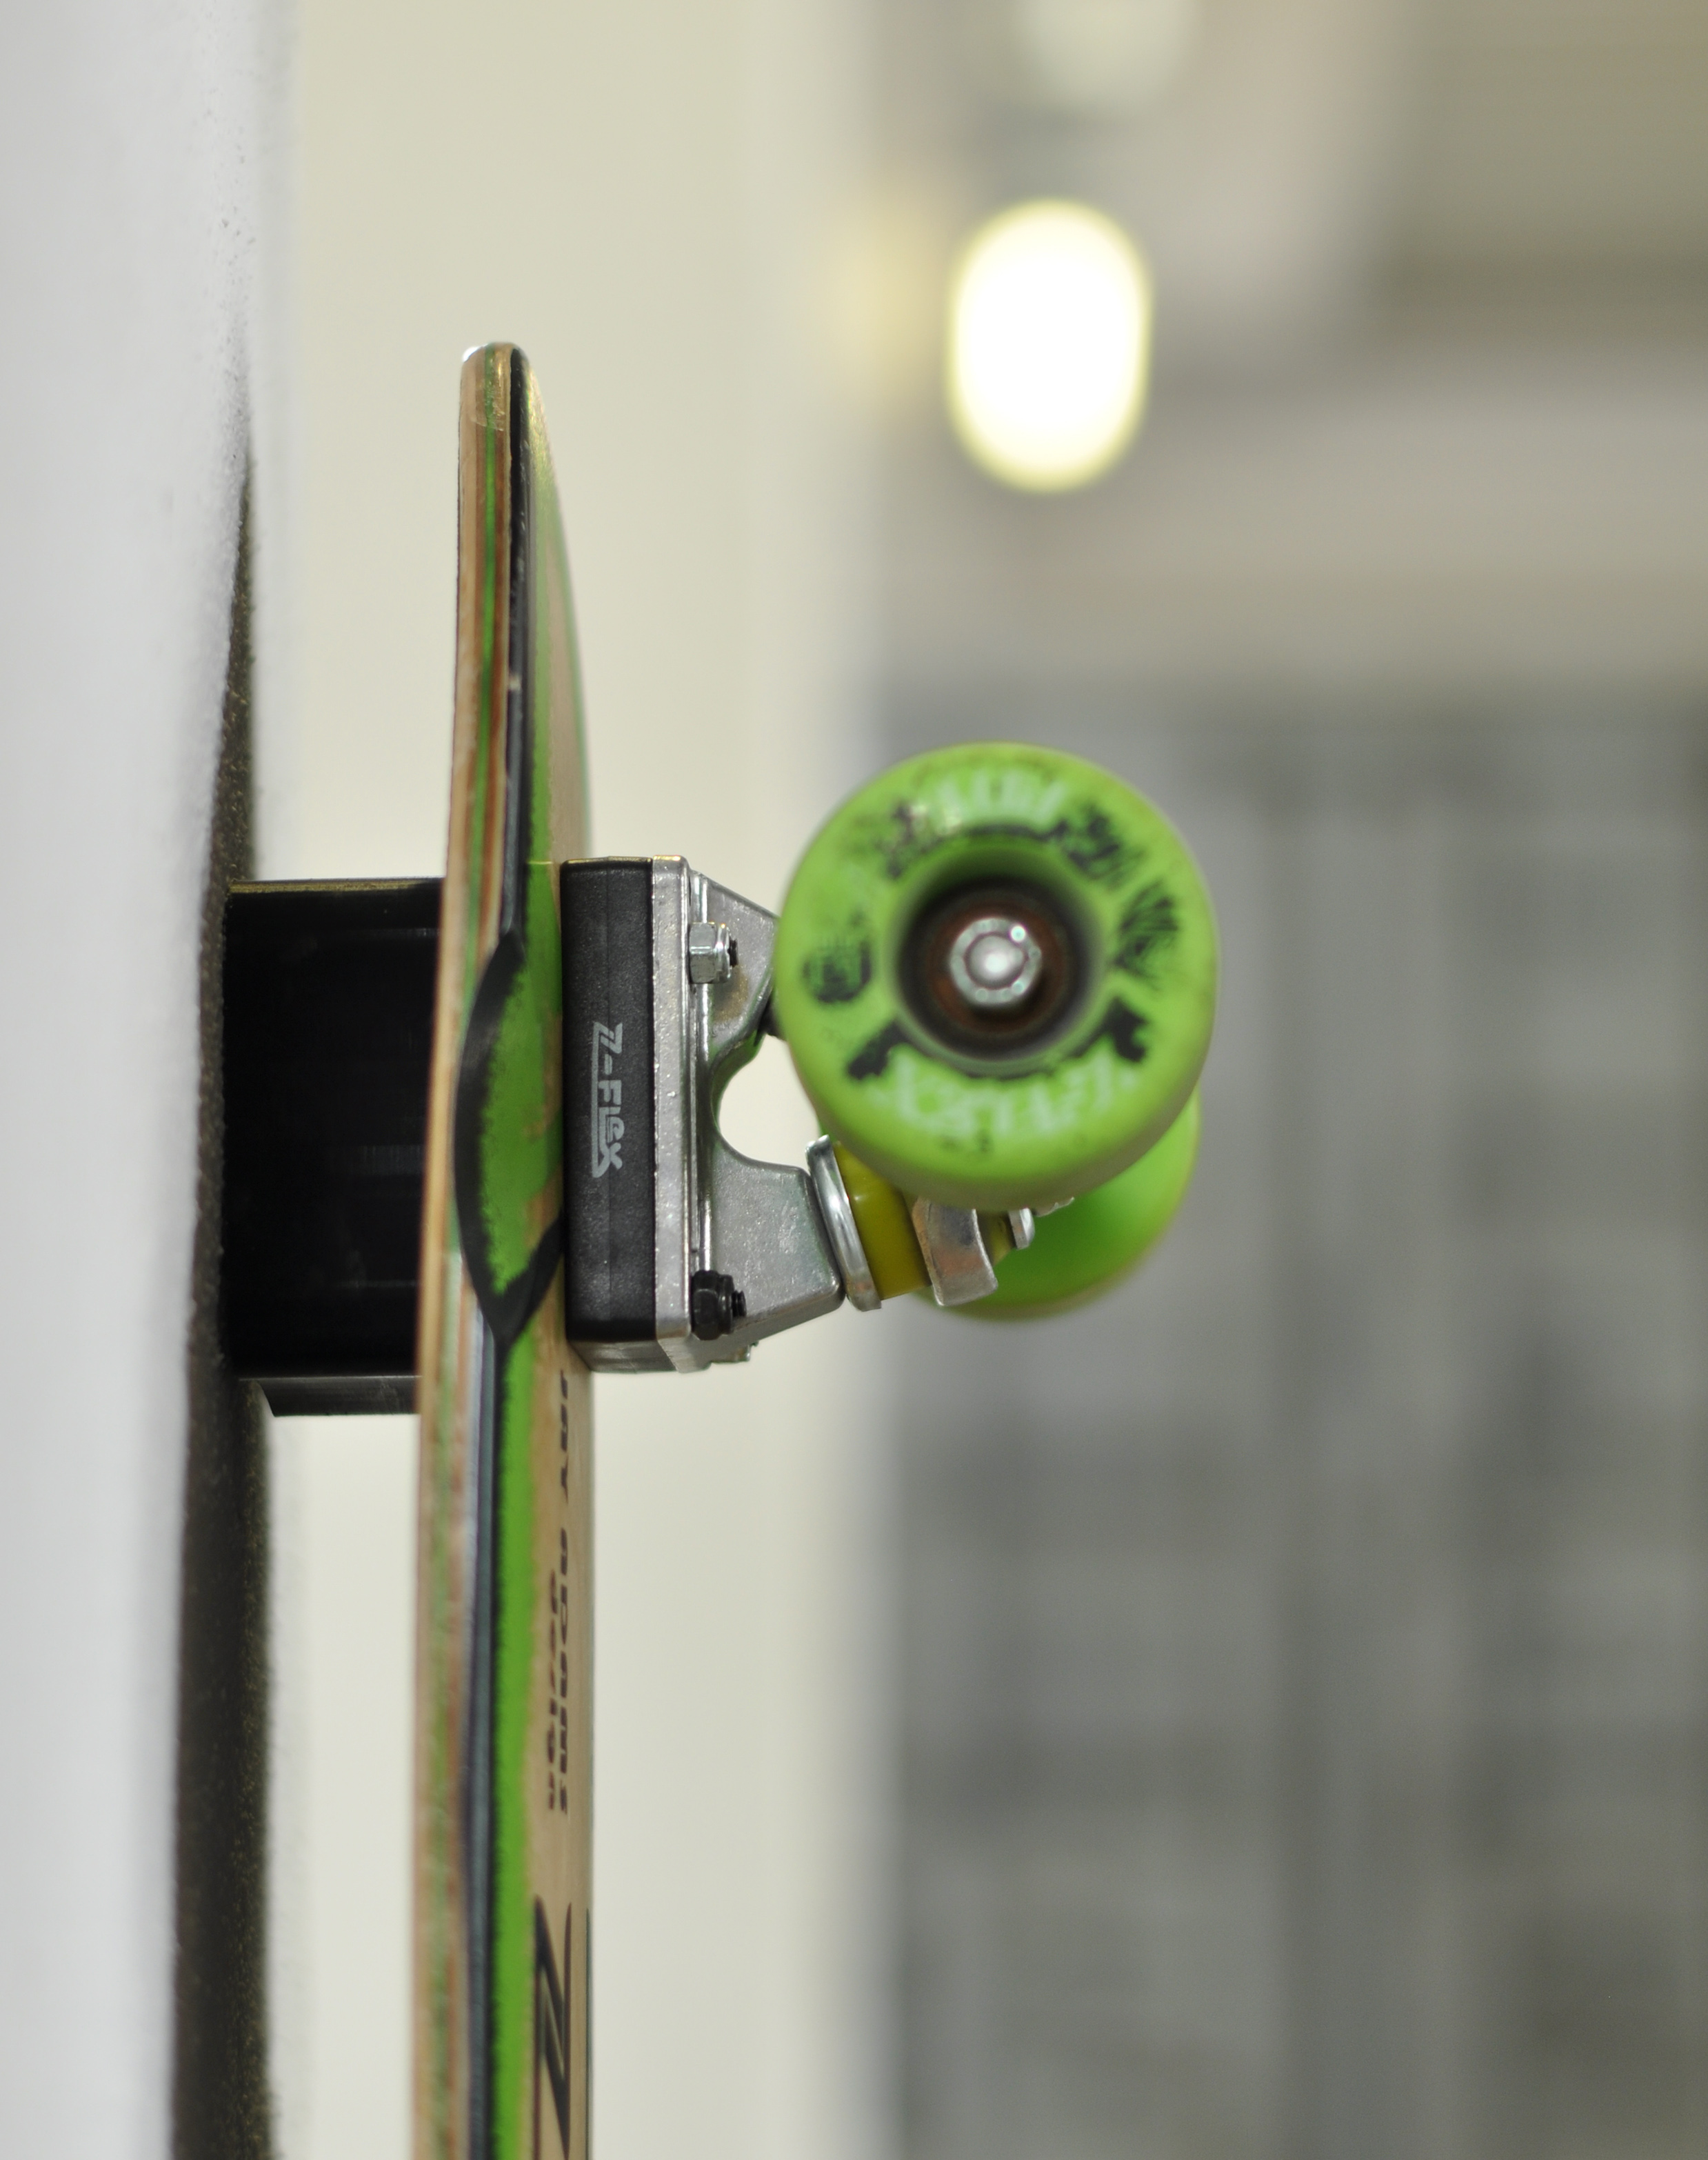 3D Printed Magnetic Skateboard/Longboard Holder (Metric) By Genghis |  Pinshape